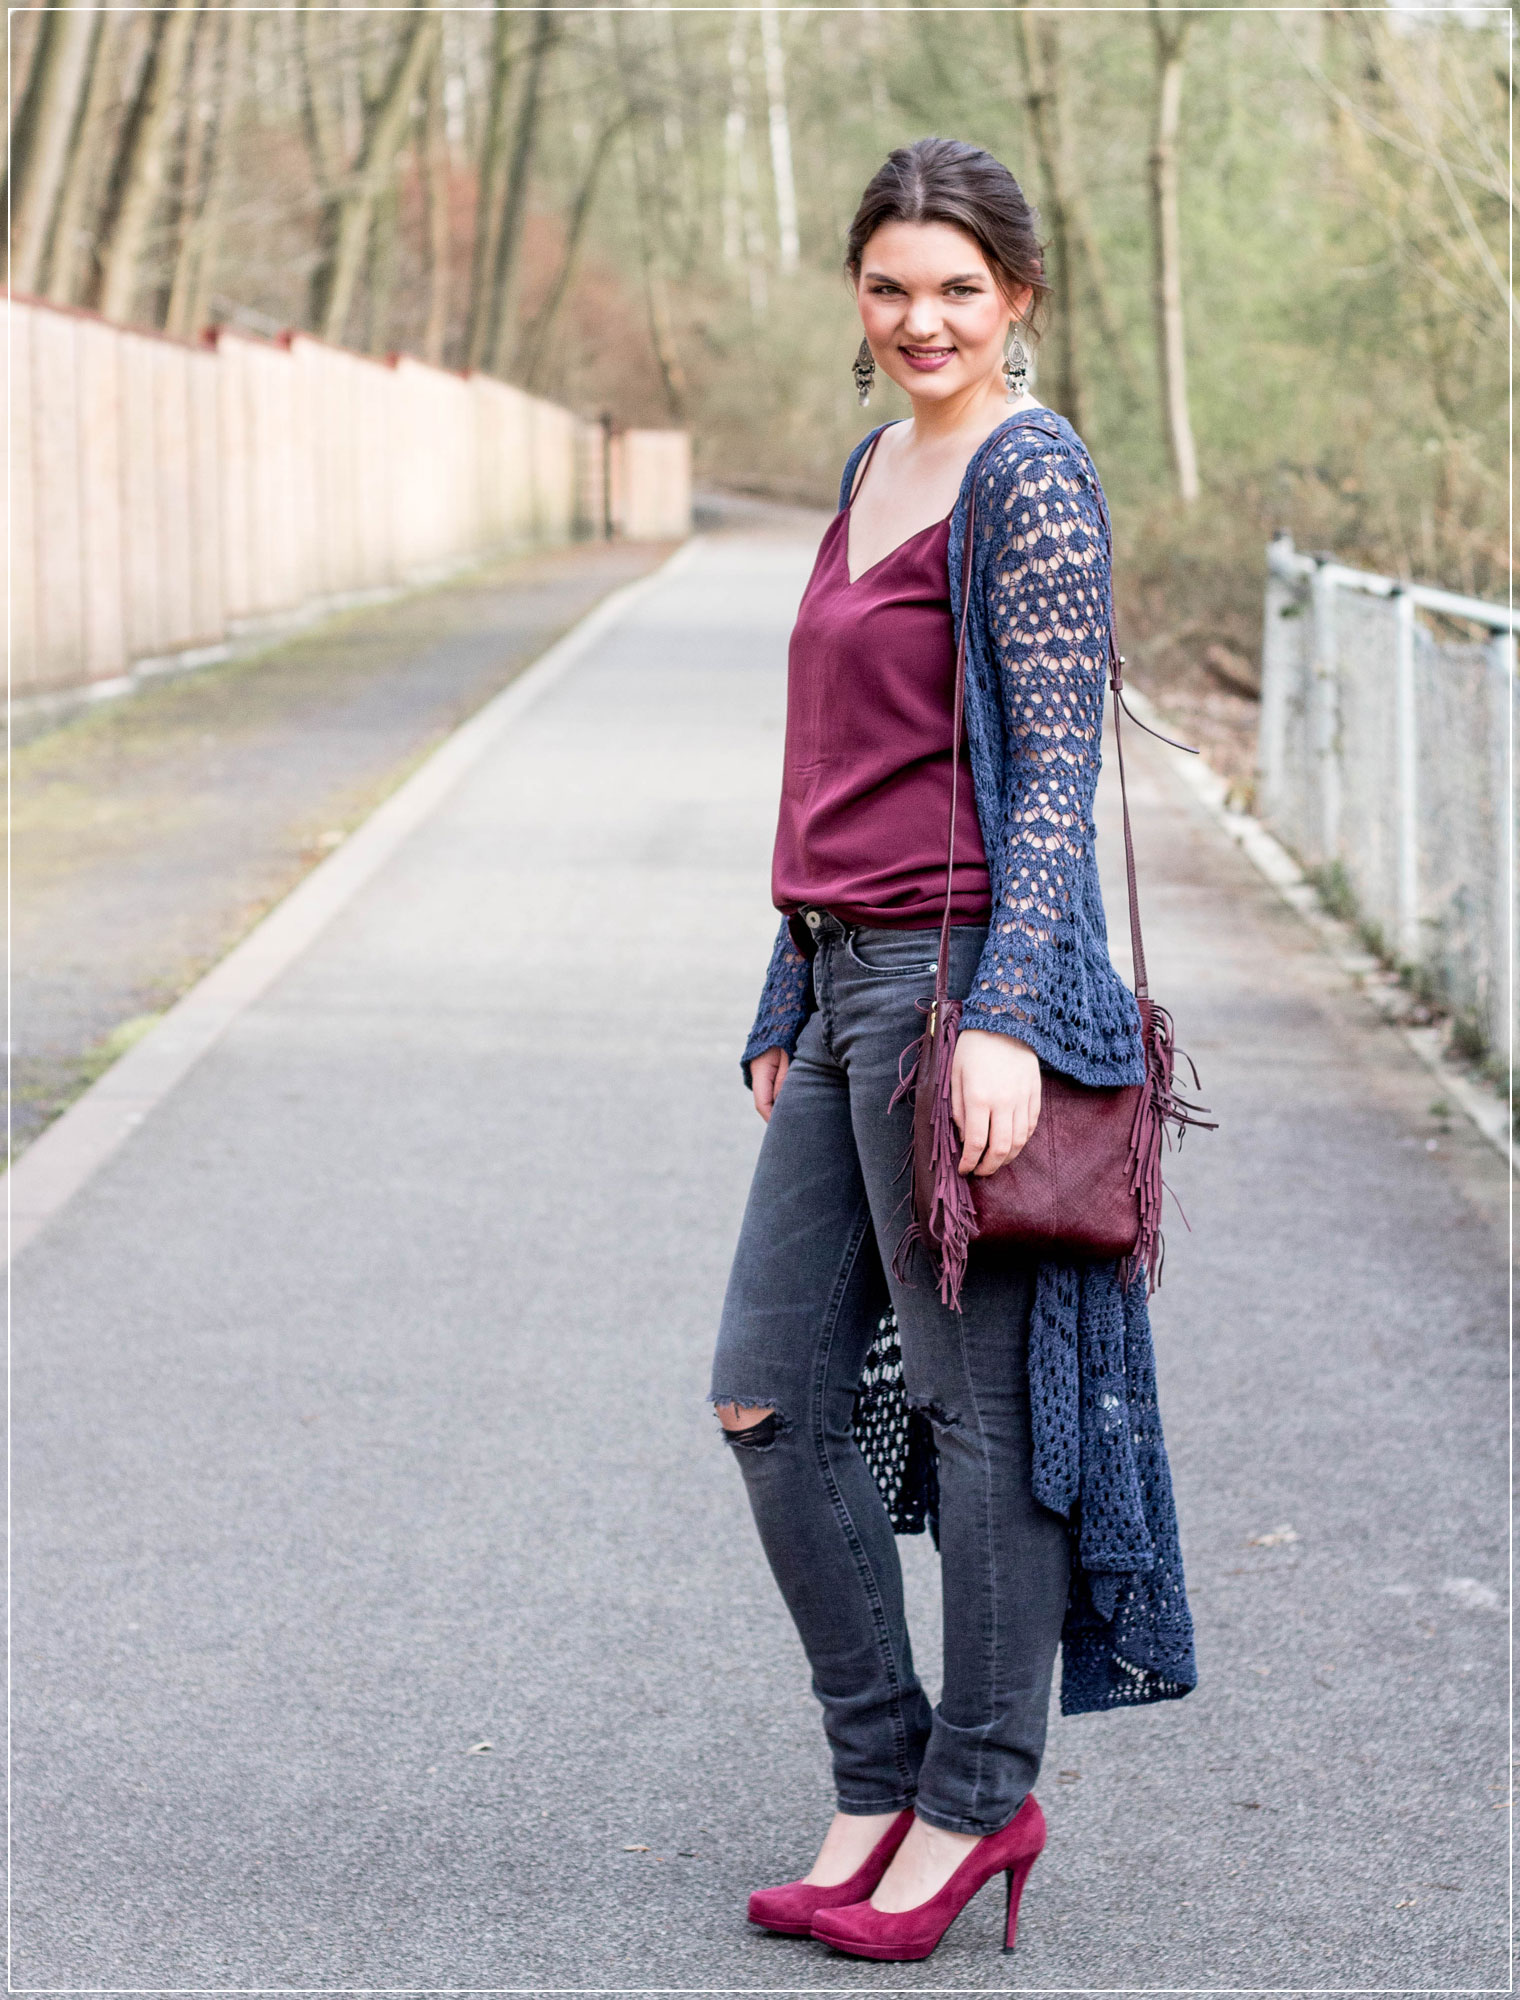 Boho Style, Frühlingsstyle, Sommeroutfit, Outfitinspiration, Summerstyle, Boho, Modebloggerin, Fashionbloggerin, Modeblog, Ruhrgebiet